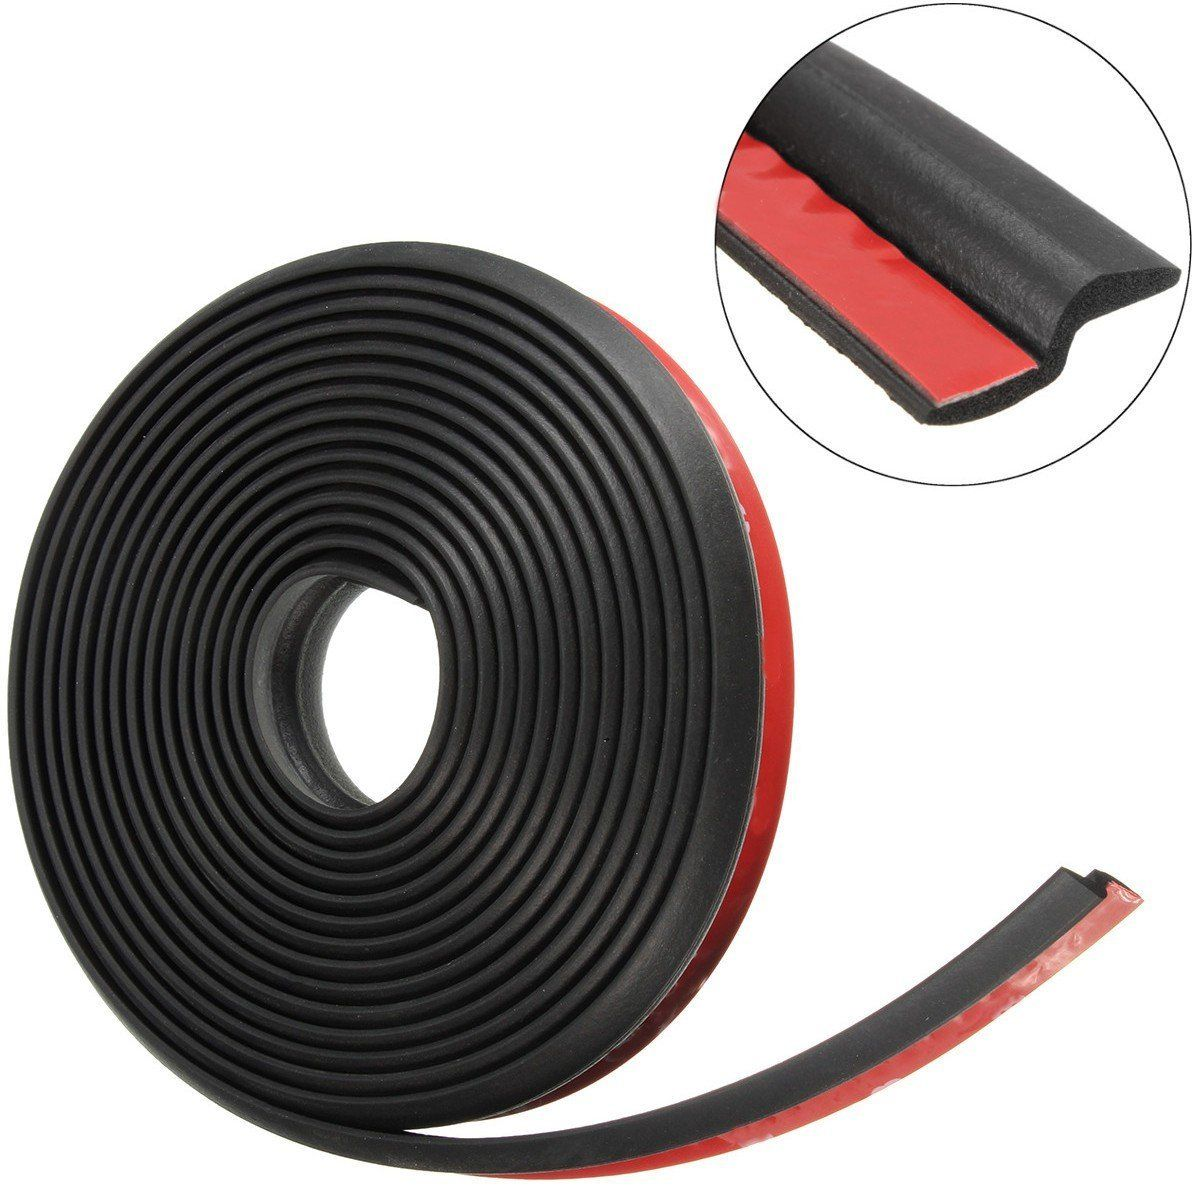 hight resolution of  rubber profiles bulb trim seals automotive weather strips and seals door belt moldings pvc moldings wiring harness rubber grommets custom extruded